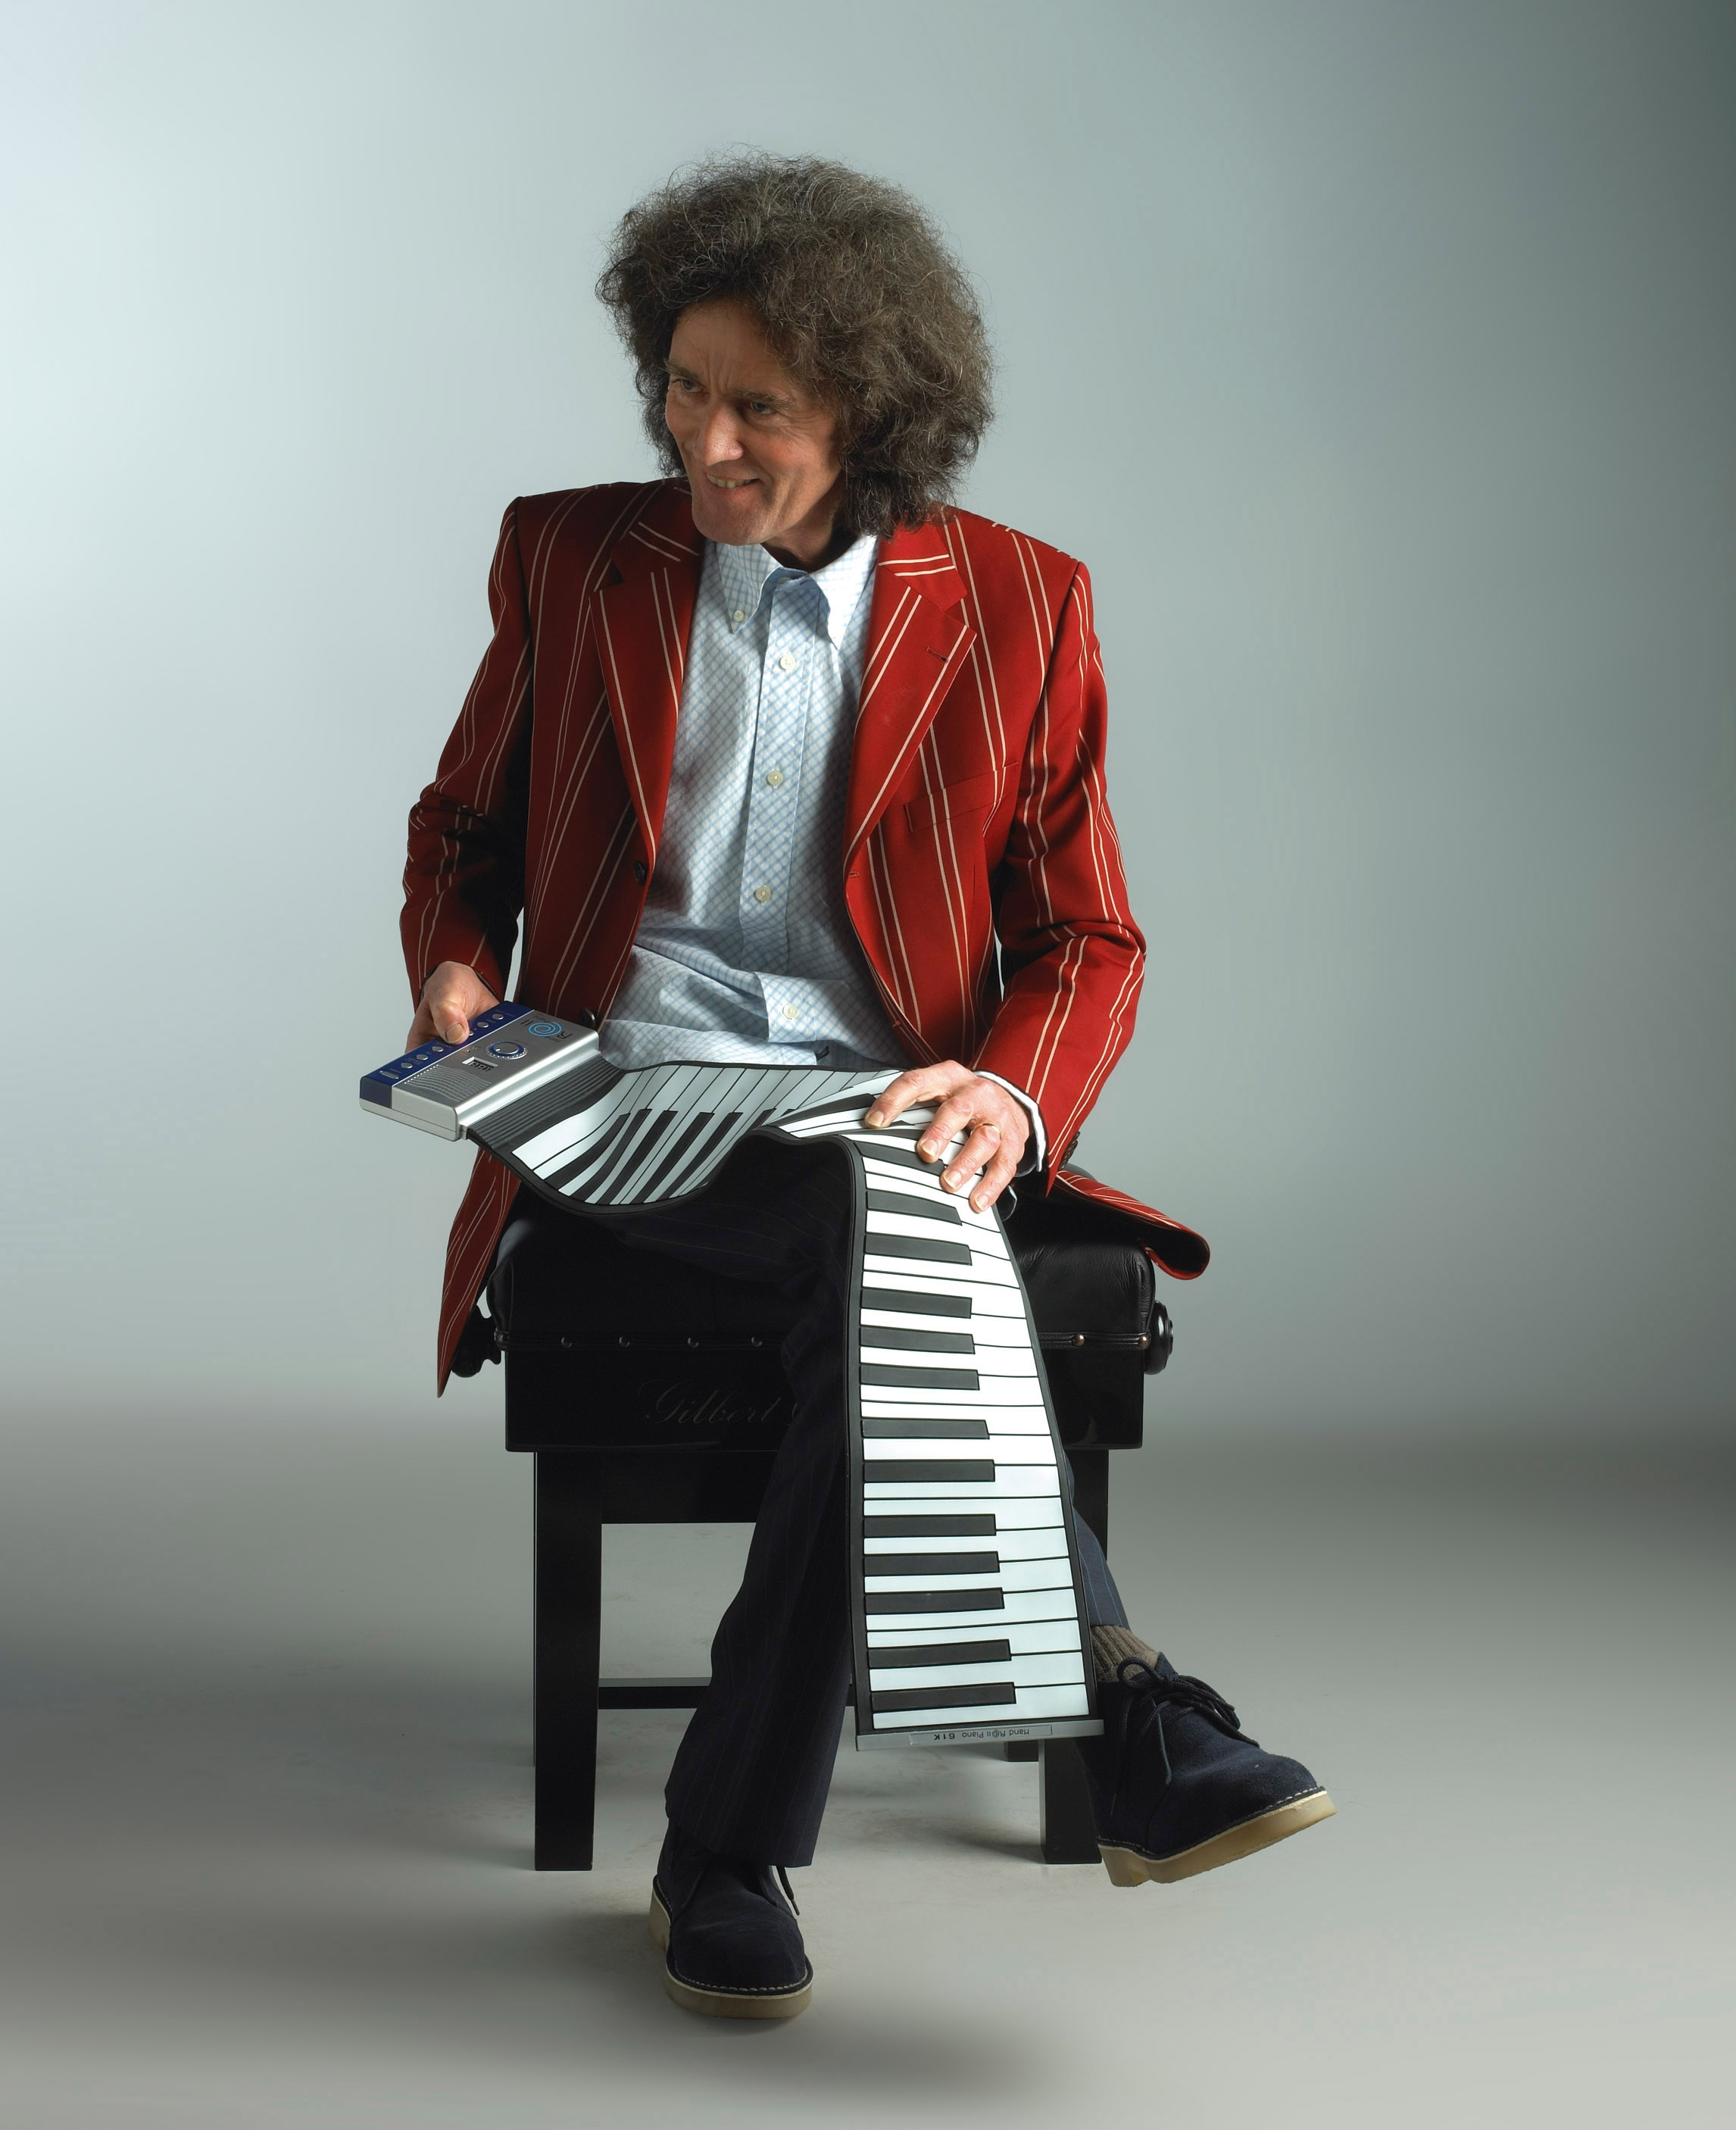 Gilbert O'Sullivan will appear at Wickham Festival 2019